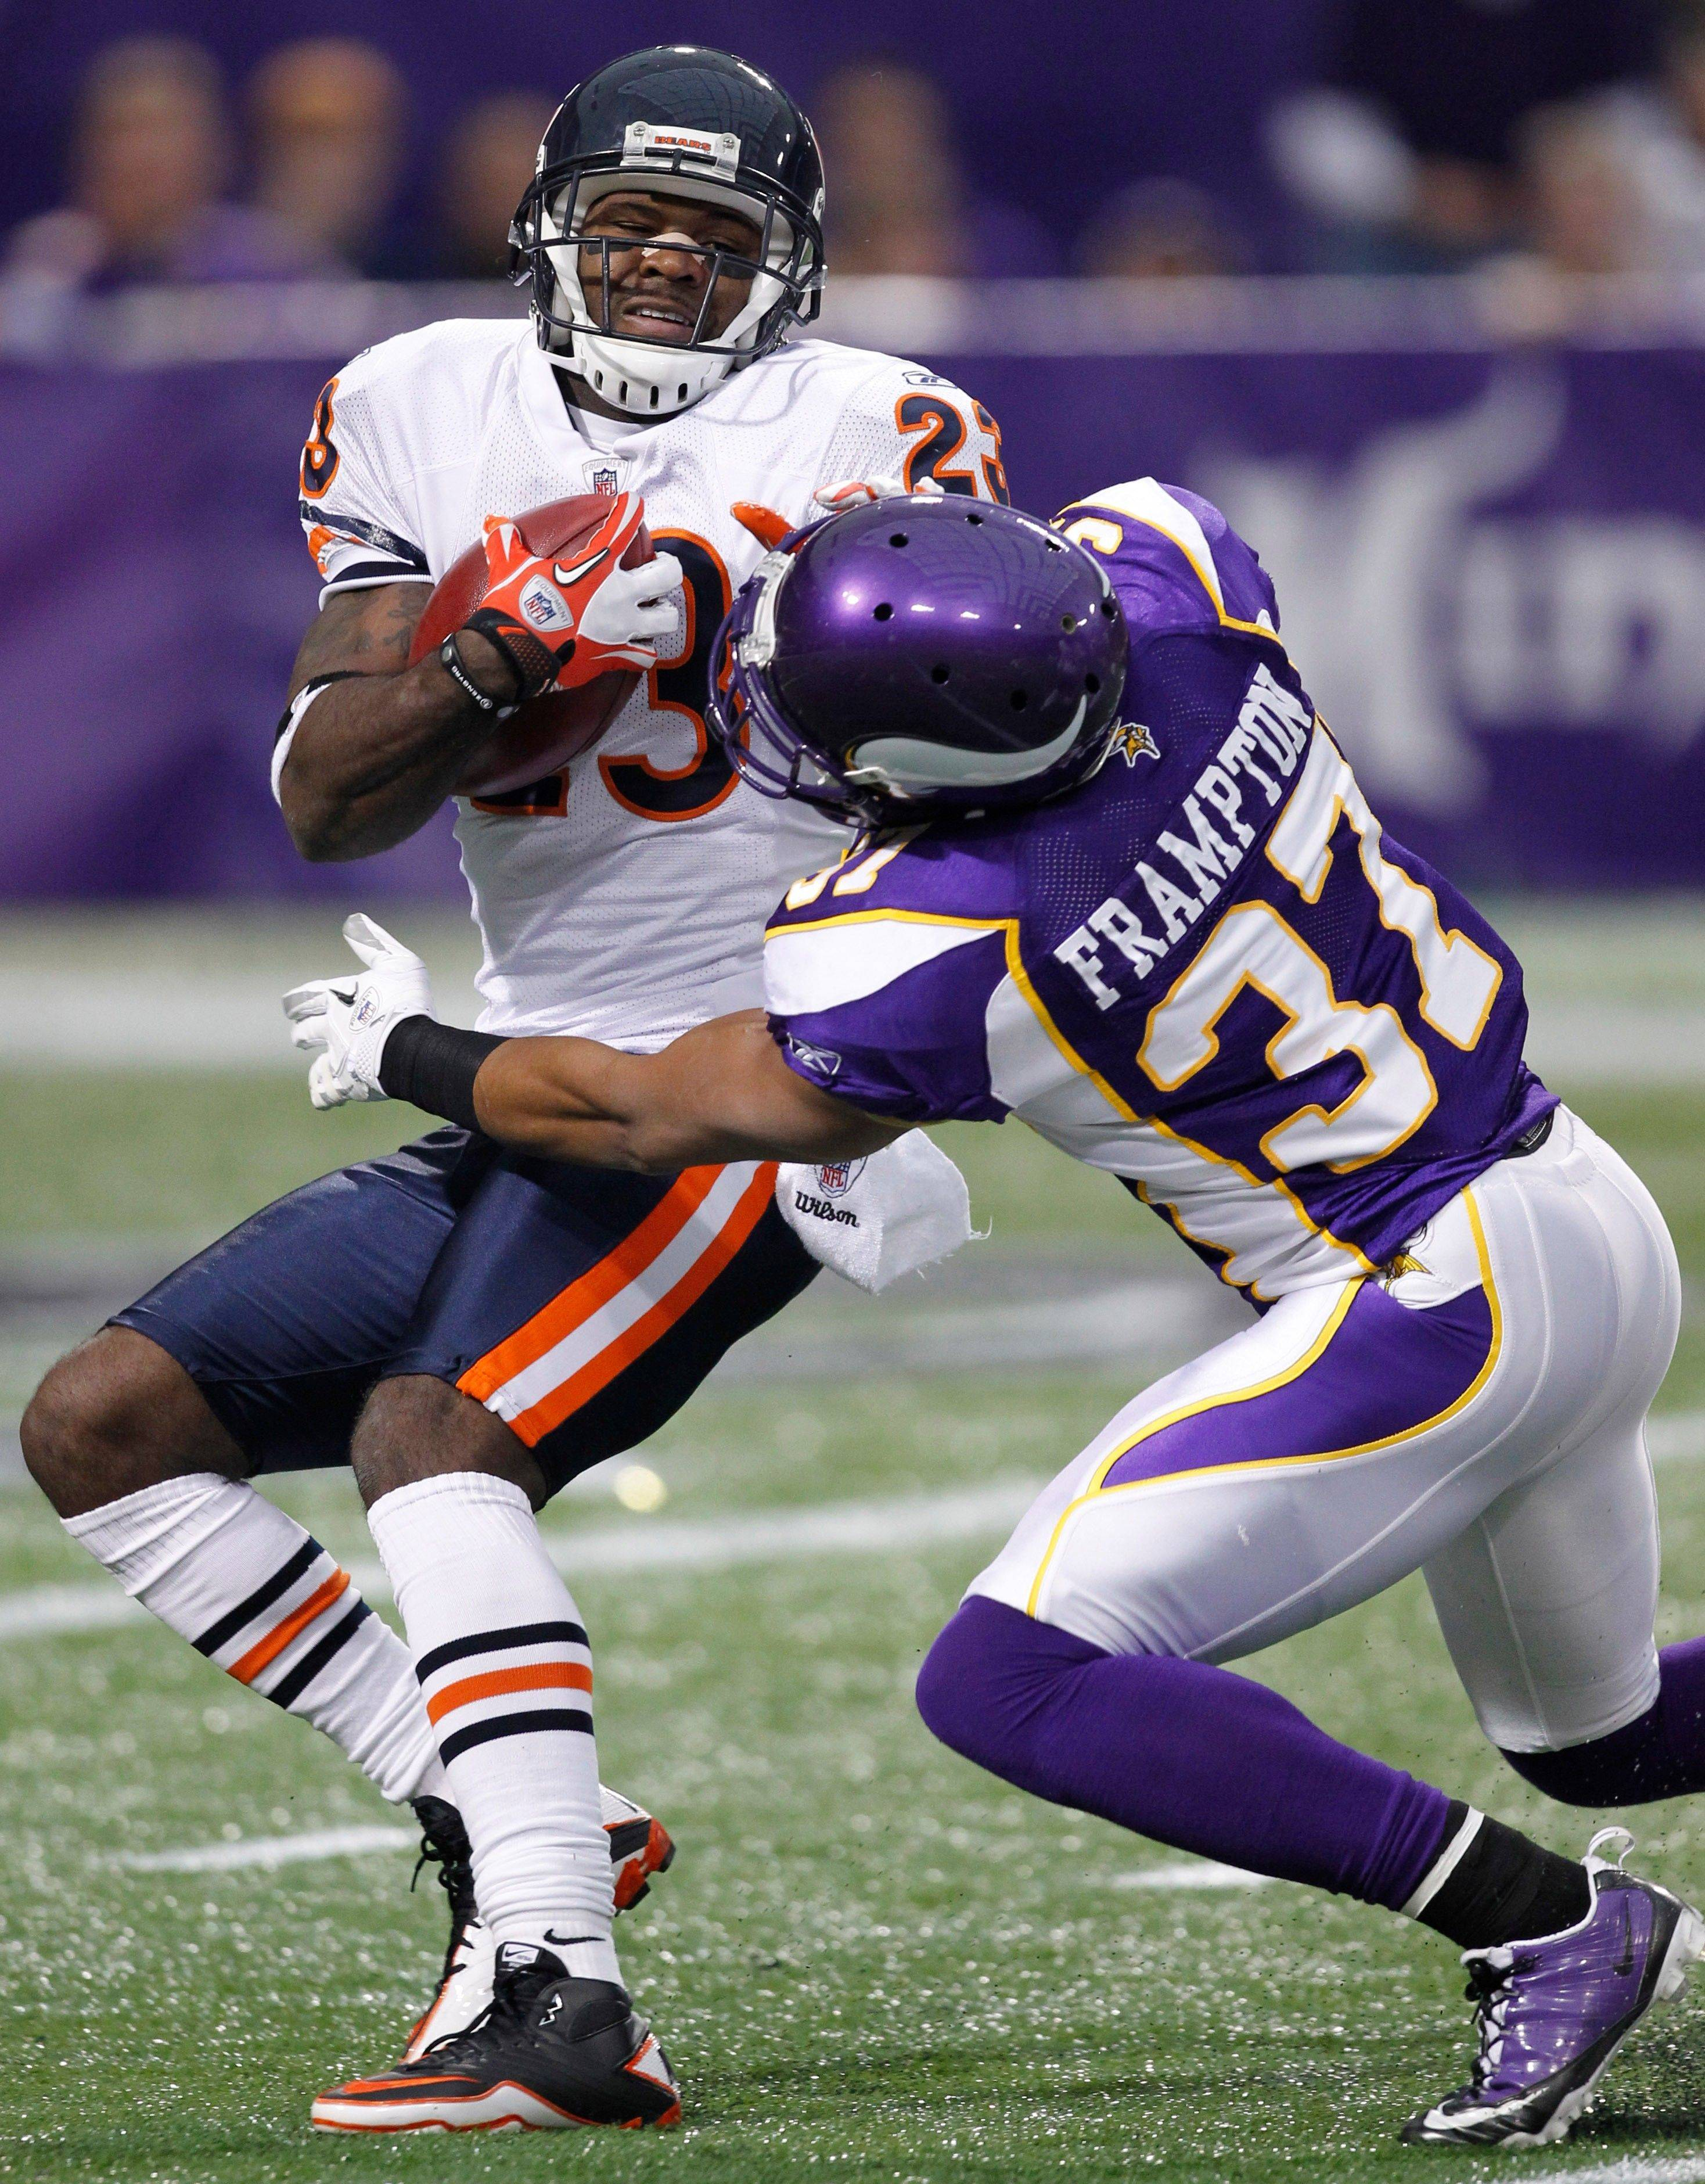 Chicago Bears wide receiver Devin Hester is tackled by Minnesota Vikings defensive back Eric Frampton on a kickoff return in the first half.